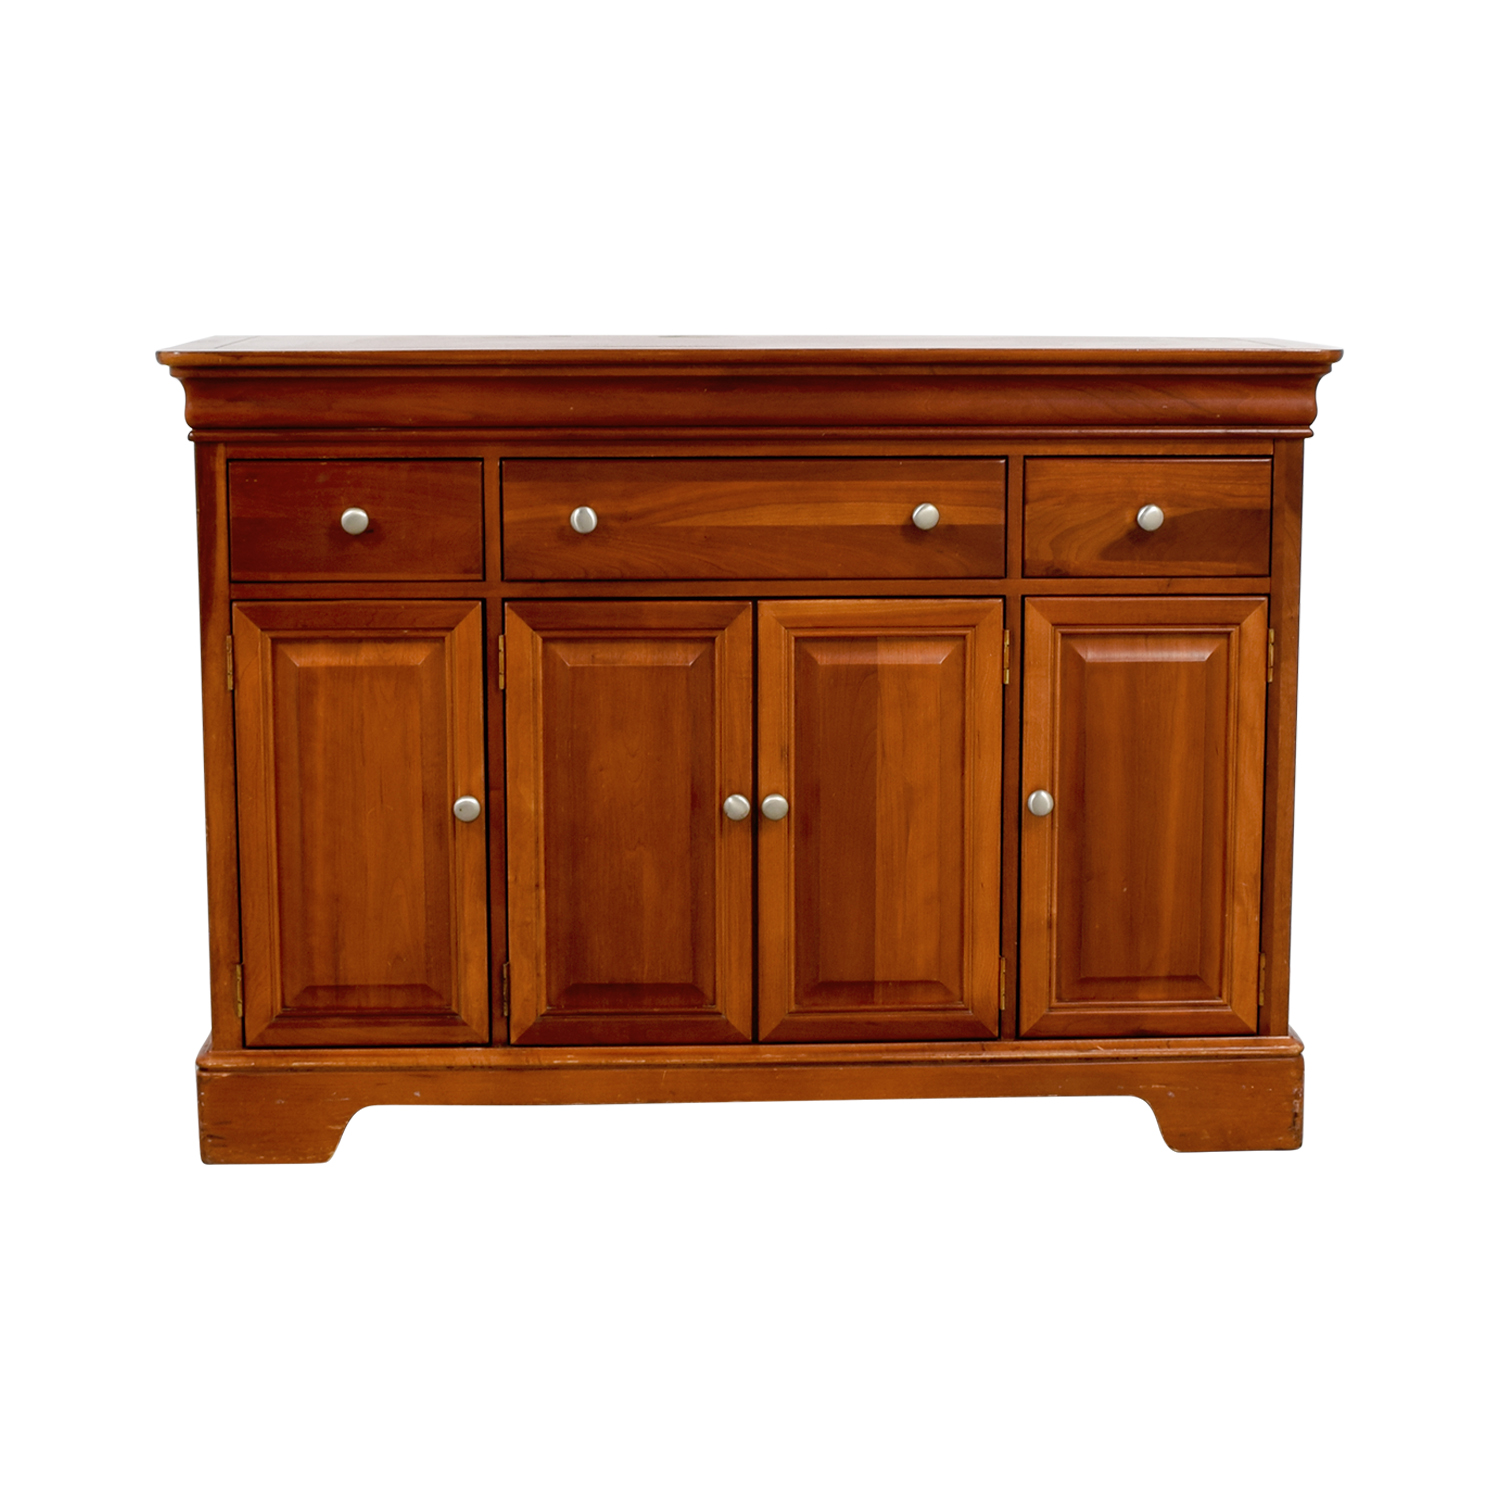 Stanley Furniture Stanley Furniture Wood Foyer Cabinet with Drawers price